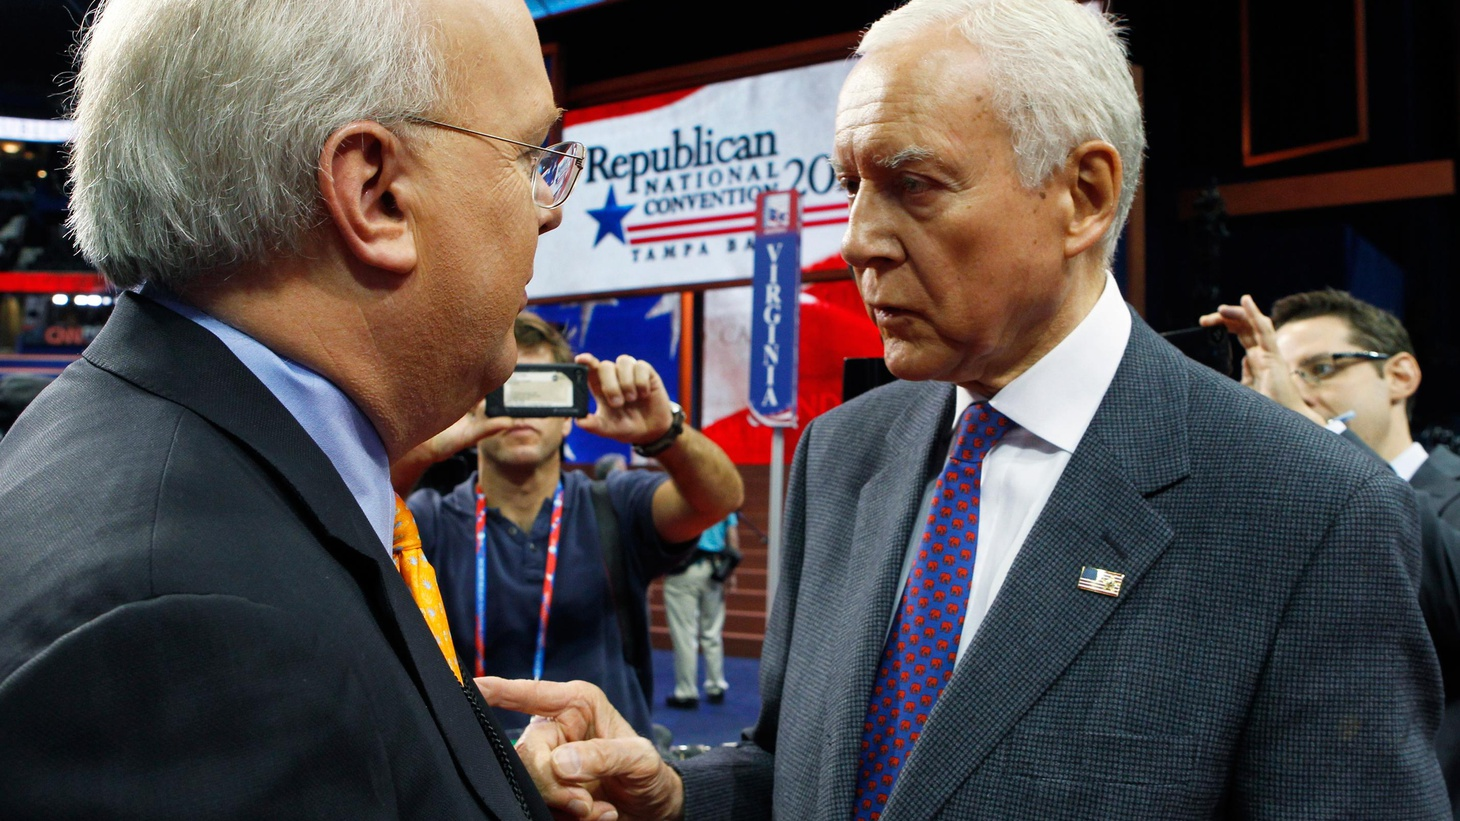 A look at how money and influence meet in Republican politics, and the diversity that makes Florida a swing state with seniors, Hispanics and evangelicals.